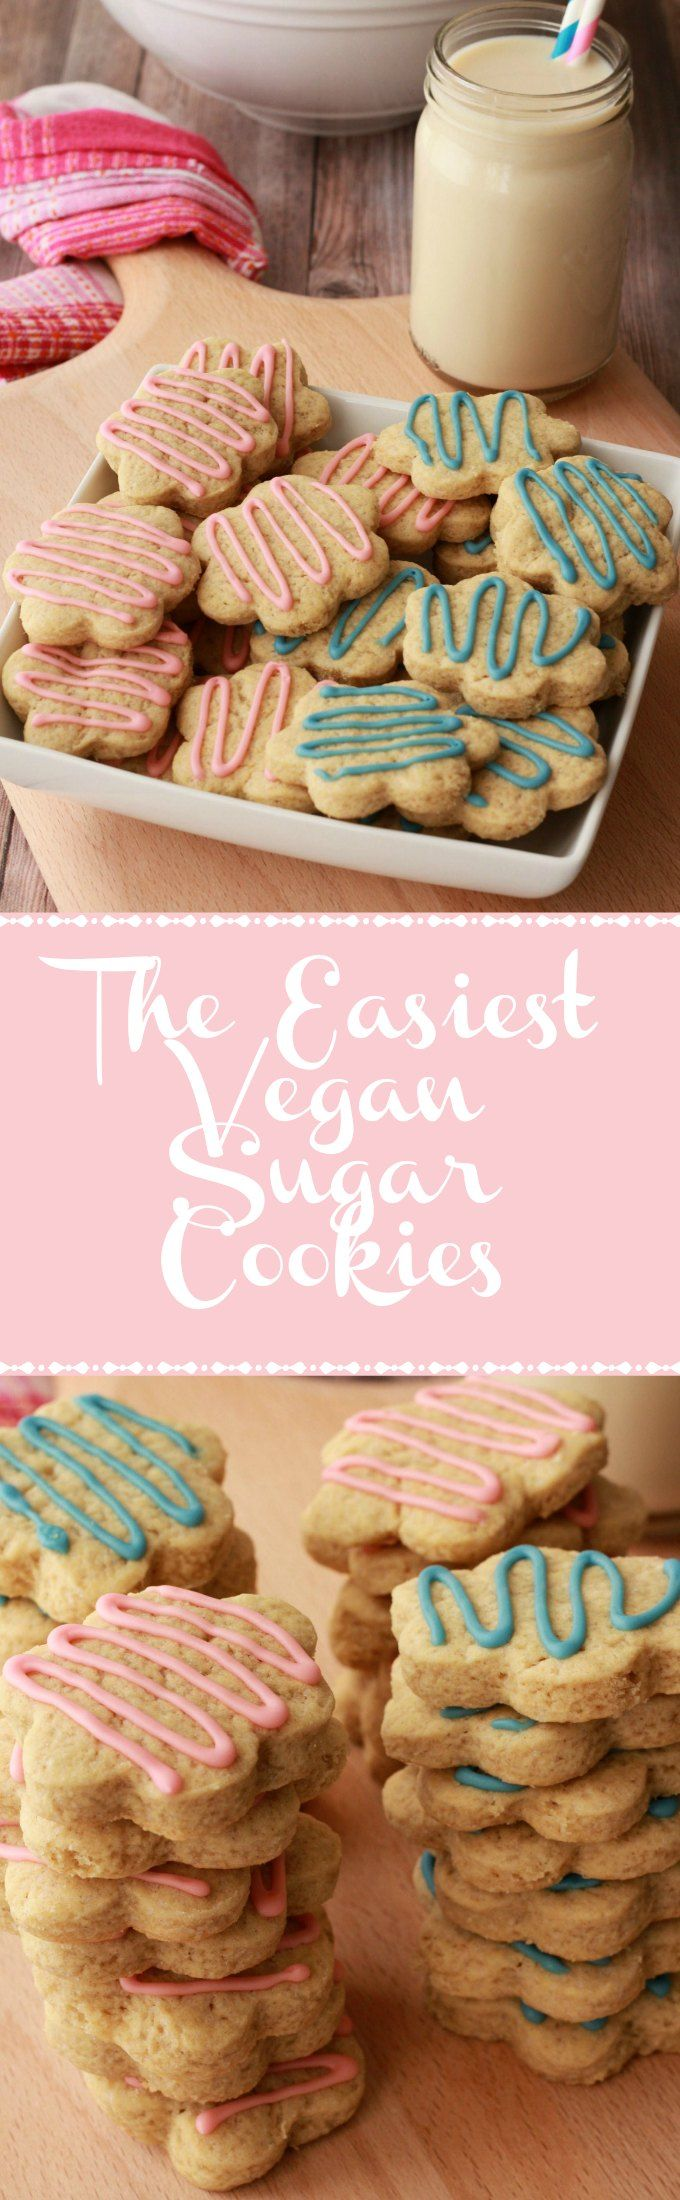 Super easy vegan sugar cookies. Perfect for any occasion! vegan | vegan dessert | vegan cookies | vegan food | Vegan recipes